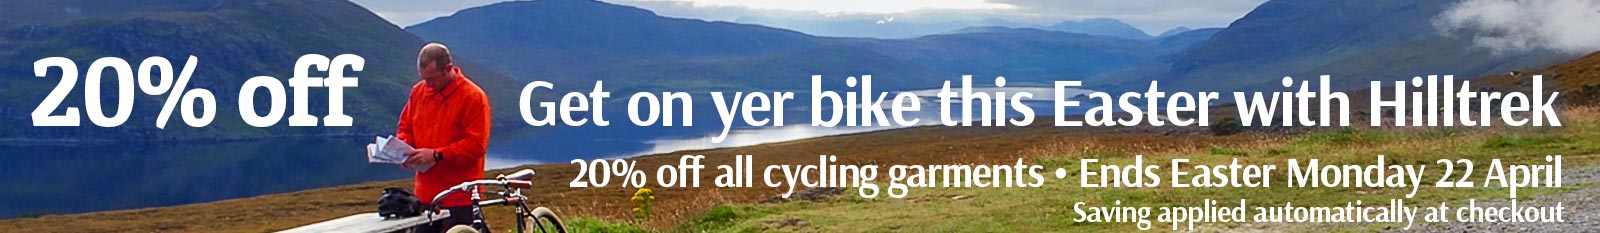 On yer bike this Easter - save 20 percent with Hilltrek